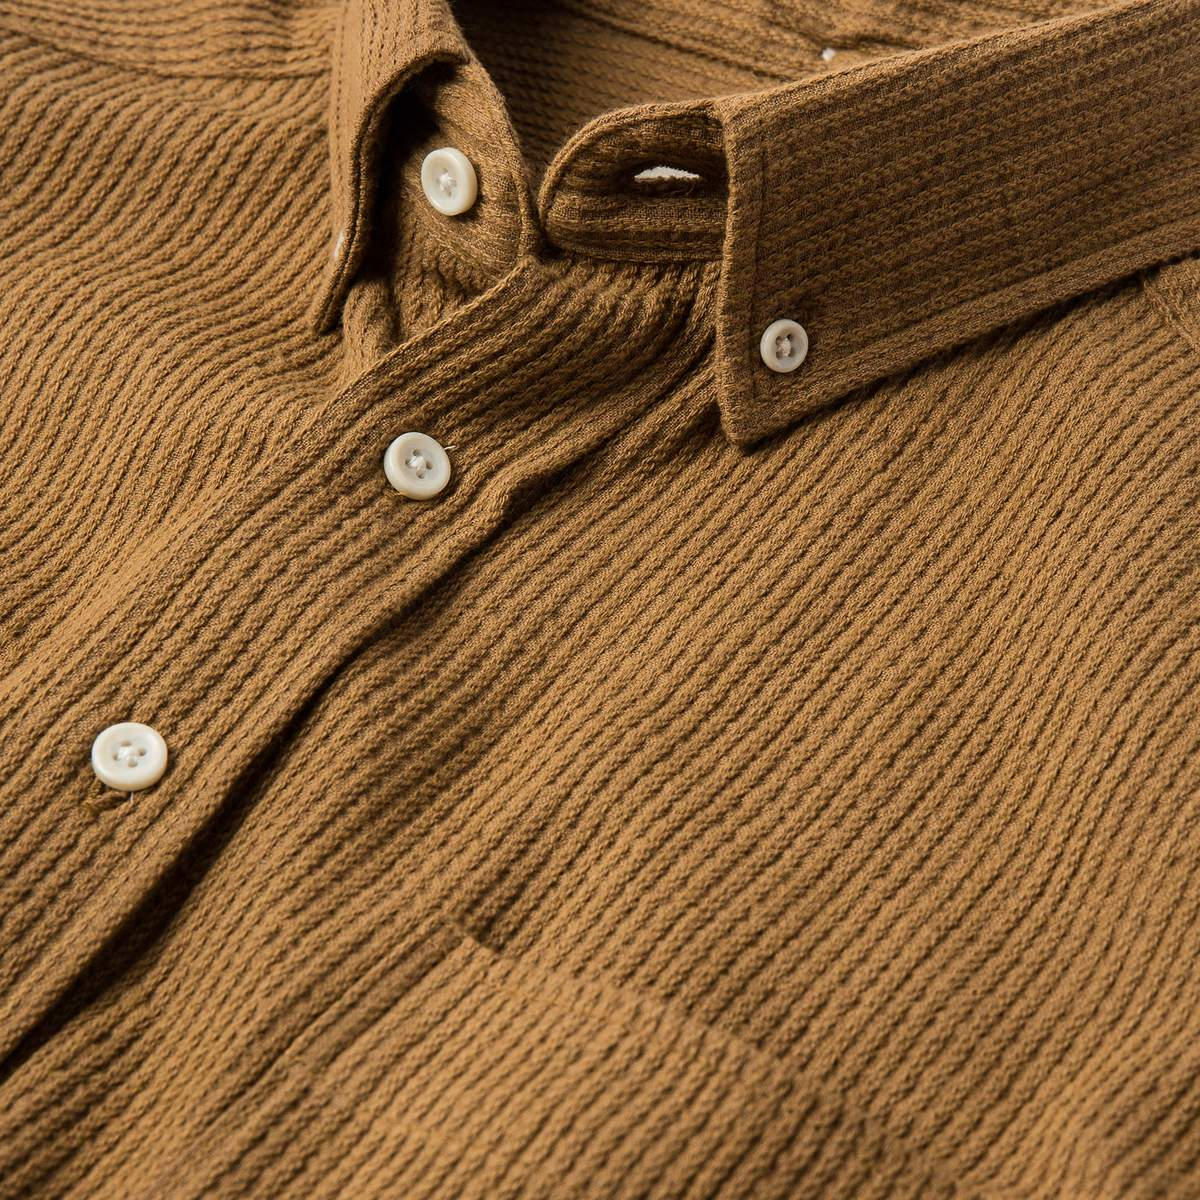 The Jack L/S Cone Mills Corded - Tobacco